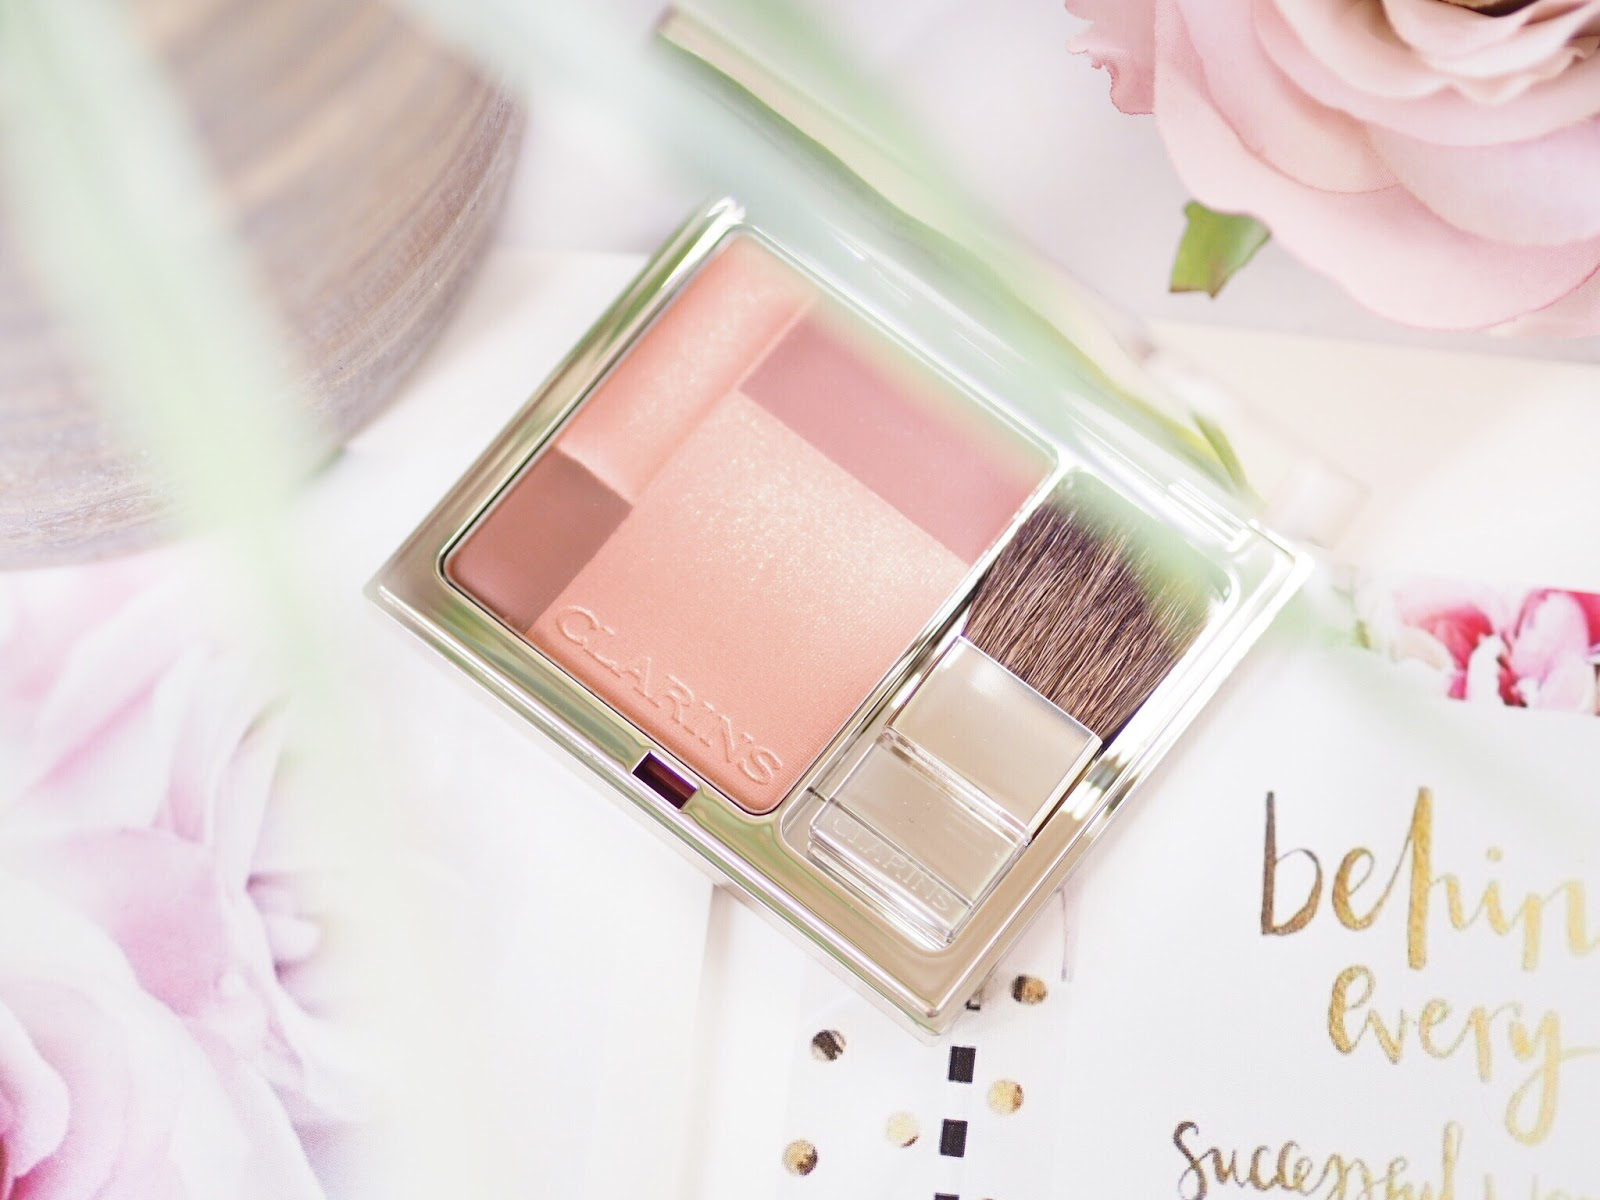 Clarins Blush, Clarins palette, Clarins blush review